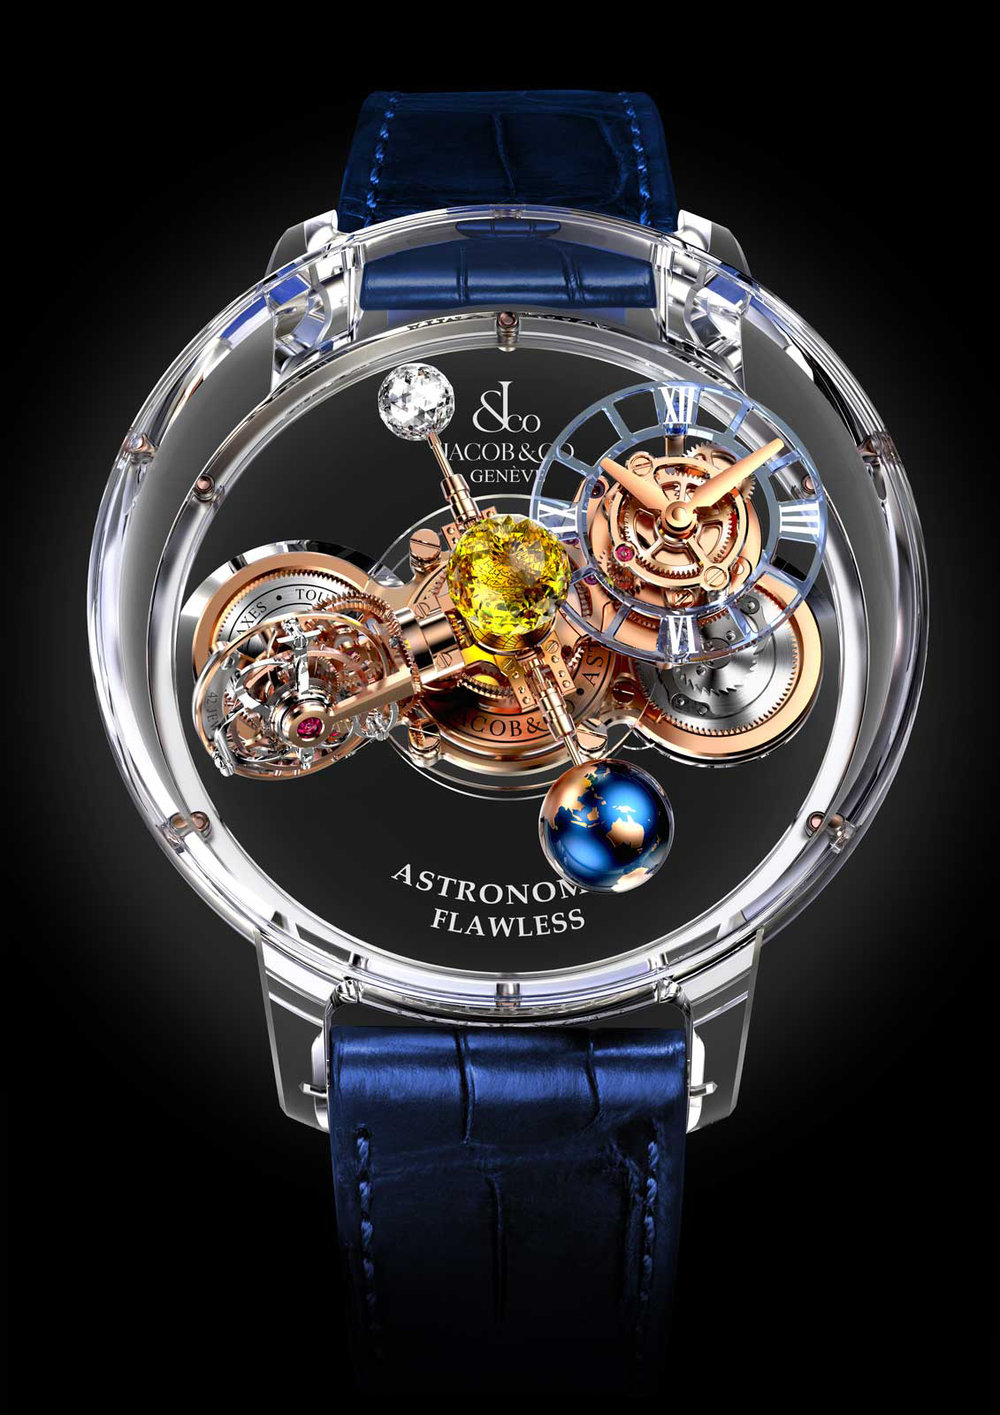 Jacob & Co. Astronomia   Celestially inspired, Jacob & Co.'s Astronomia features a triple-axis tourbillon, faceted spherical diamond, and magnesium-lacquered globe. The non-diamond model is obtainable at $566,350, while the diamond version is available for $1,004,800. Astronomia combines the expertise of Swiss craftsmanship with an artist's deft touch to create a truly spectacular timepiece. Case: 50 mm Calibre: Exclusive Jacob & Co. Manual Winding JCAM10 Non-diamond price: $566,350 Diamond price: $1,004,800